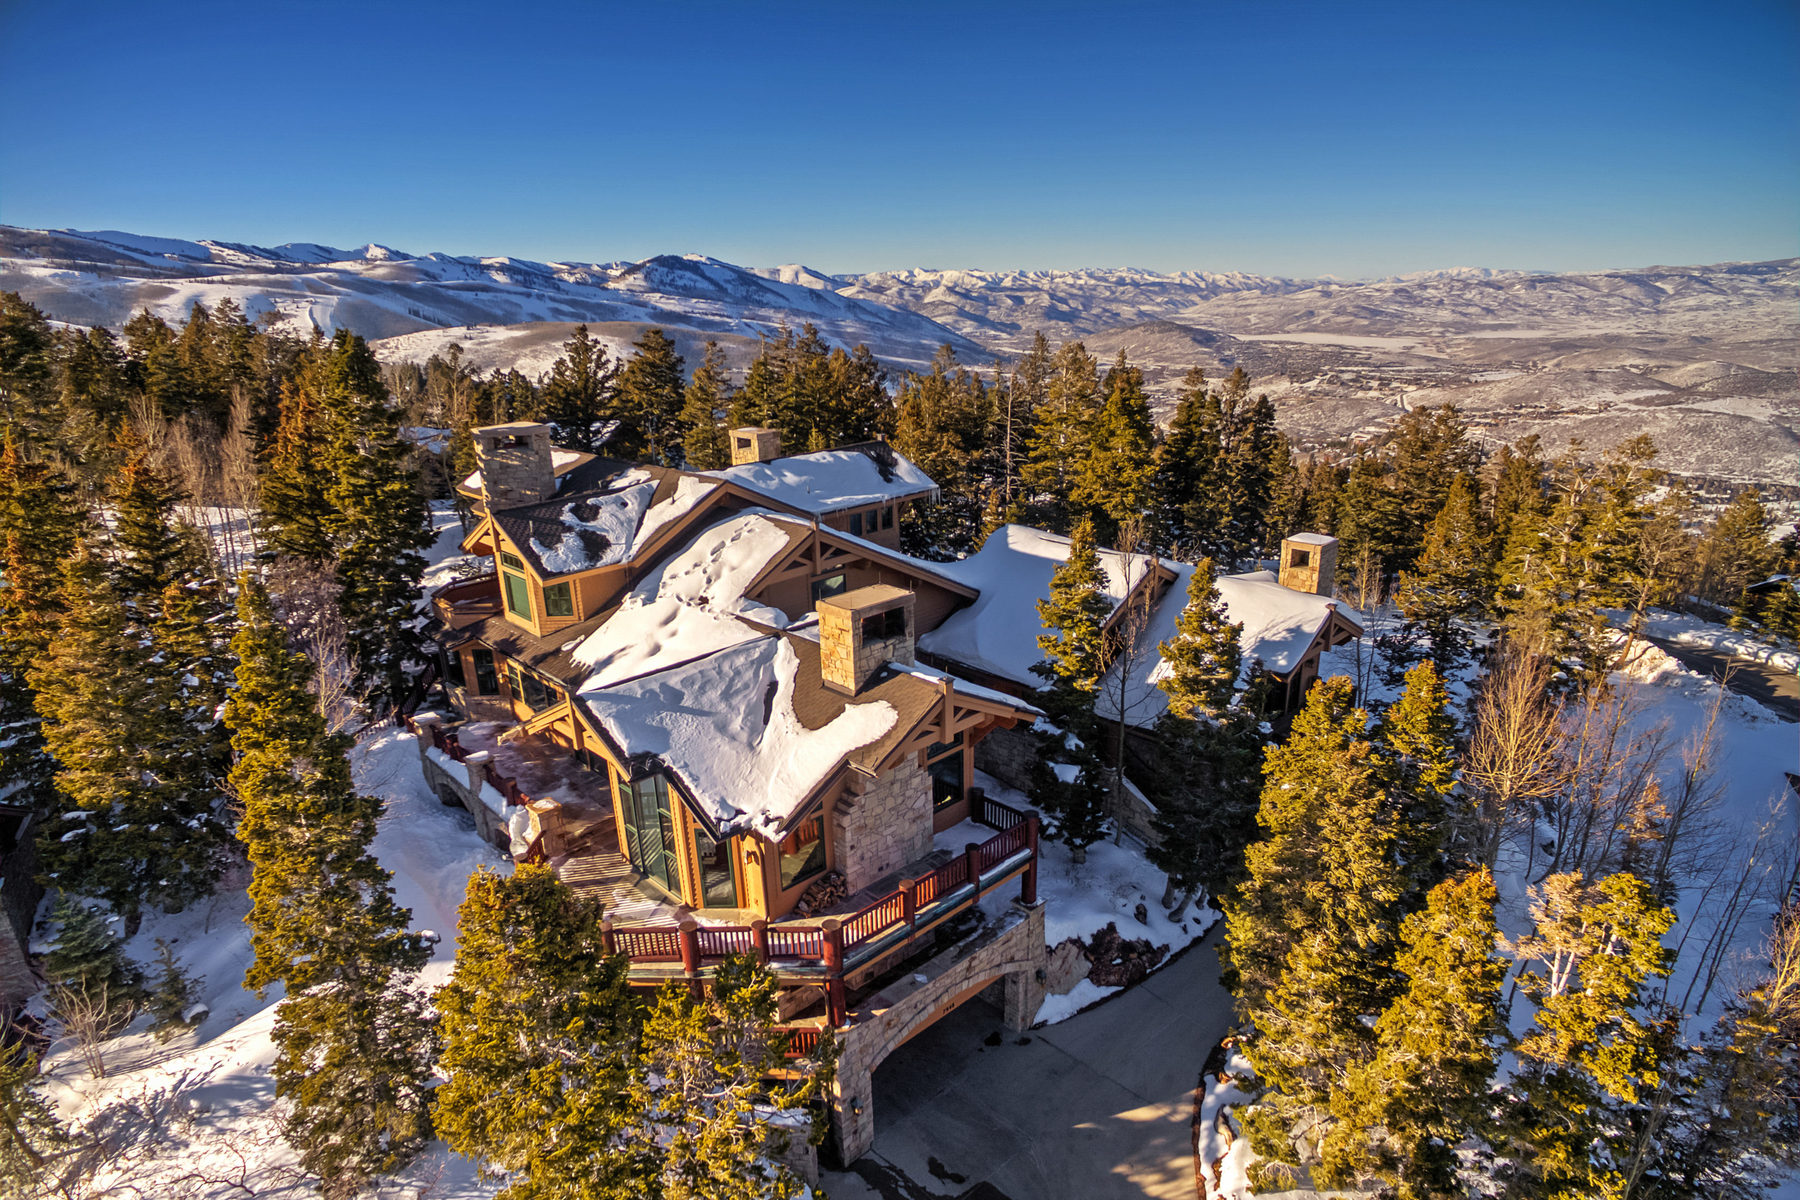 Single Family Home for Sale at Privacy, Luxury, Views and Ultimate Ski access in Bald Eagle community 7948 Red Tail Ct Park City, Utah, 84060 United States